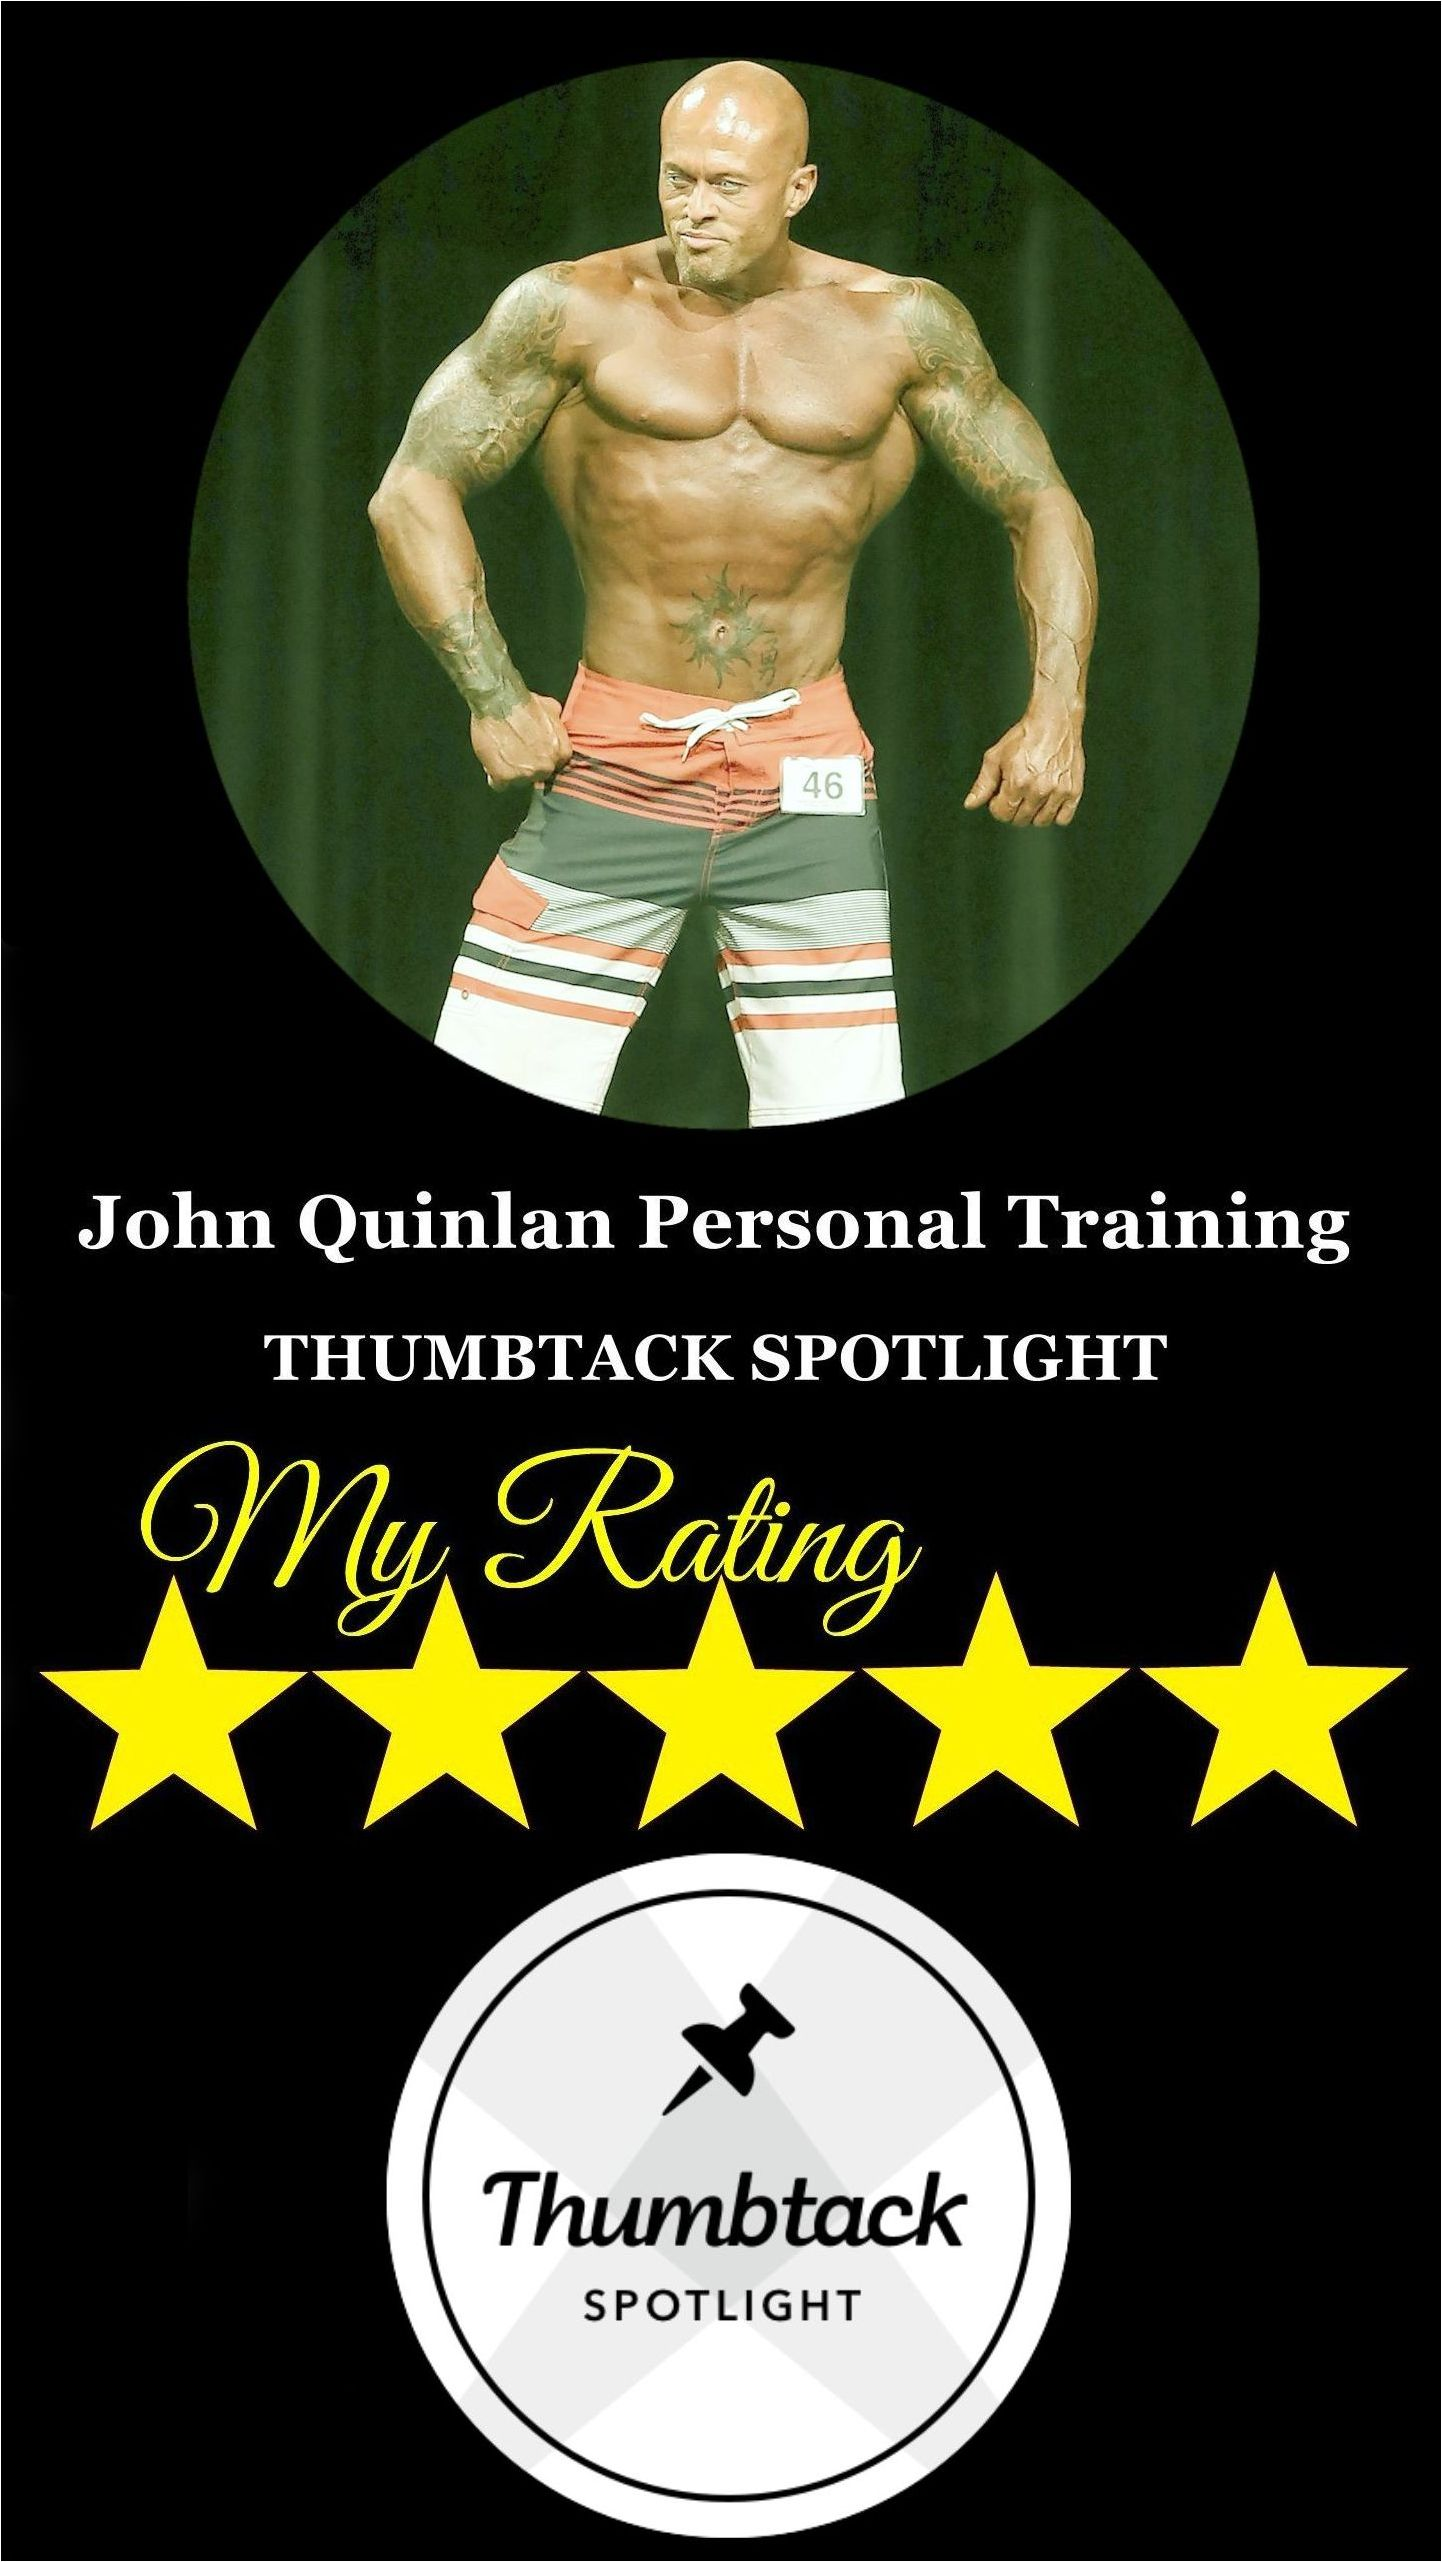 Actor & Physique Model Personal Trainer John Joseph Quinlan Thumbtack Spotlight #JohnQuinlan